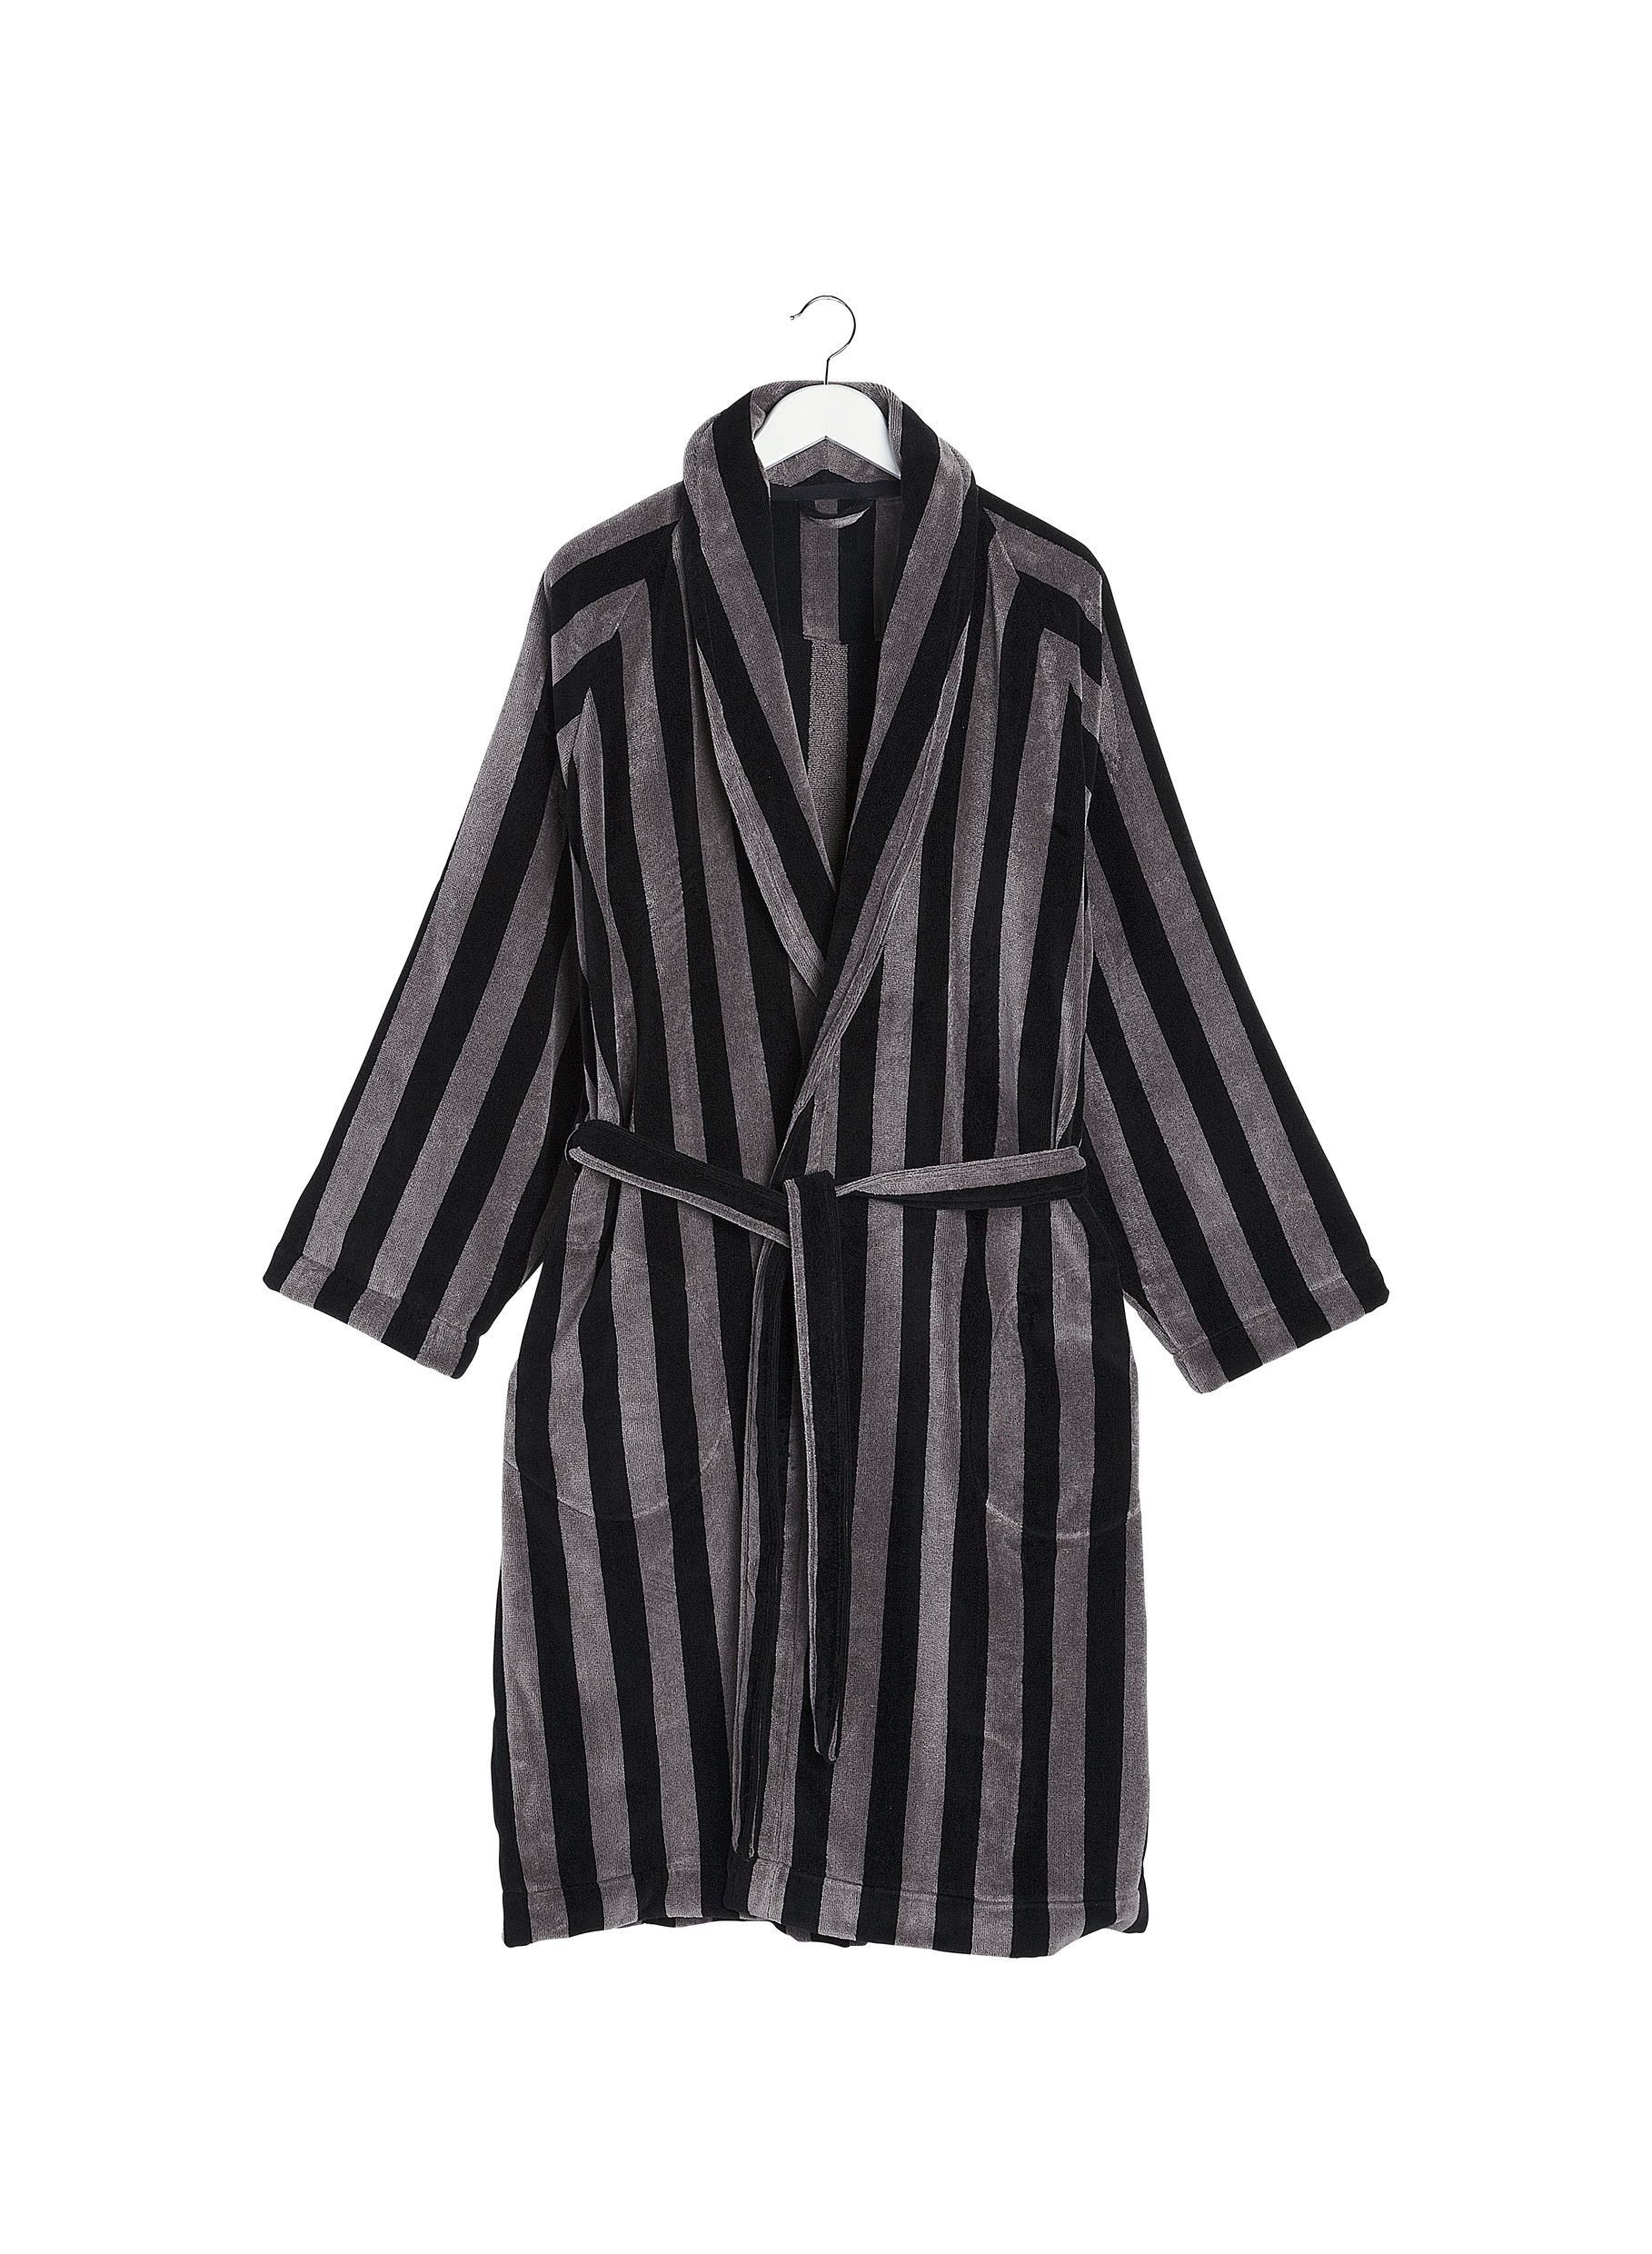 Marimekko, Nimikko Mikko Bathrobe, S/M / Grey/Black- Placewares